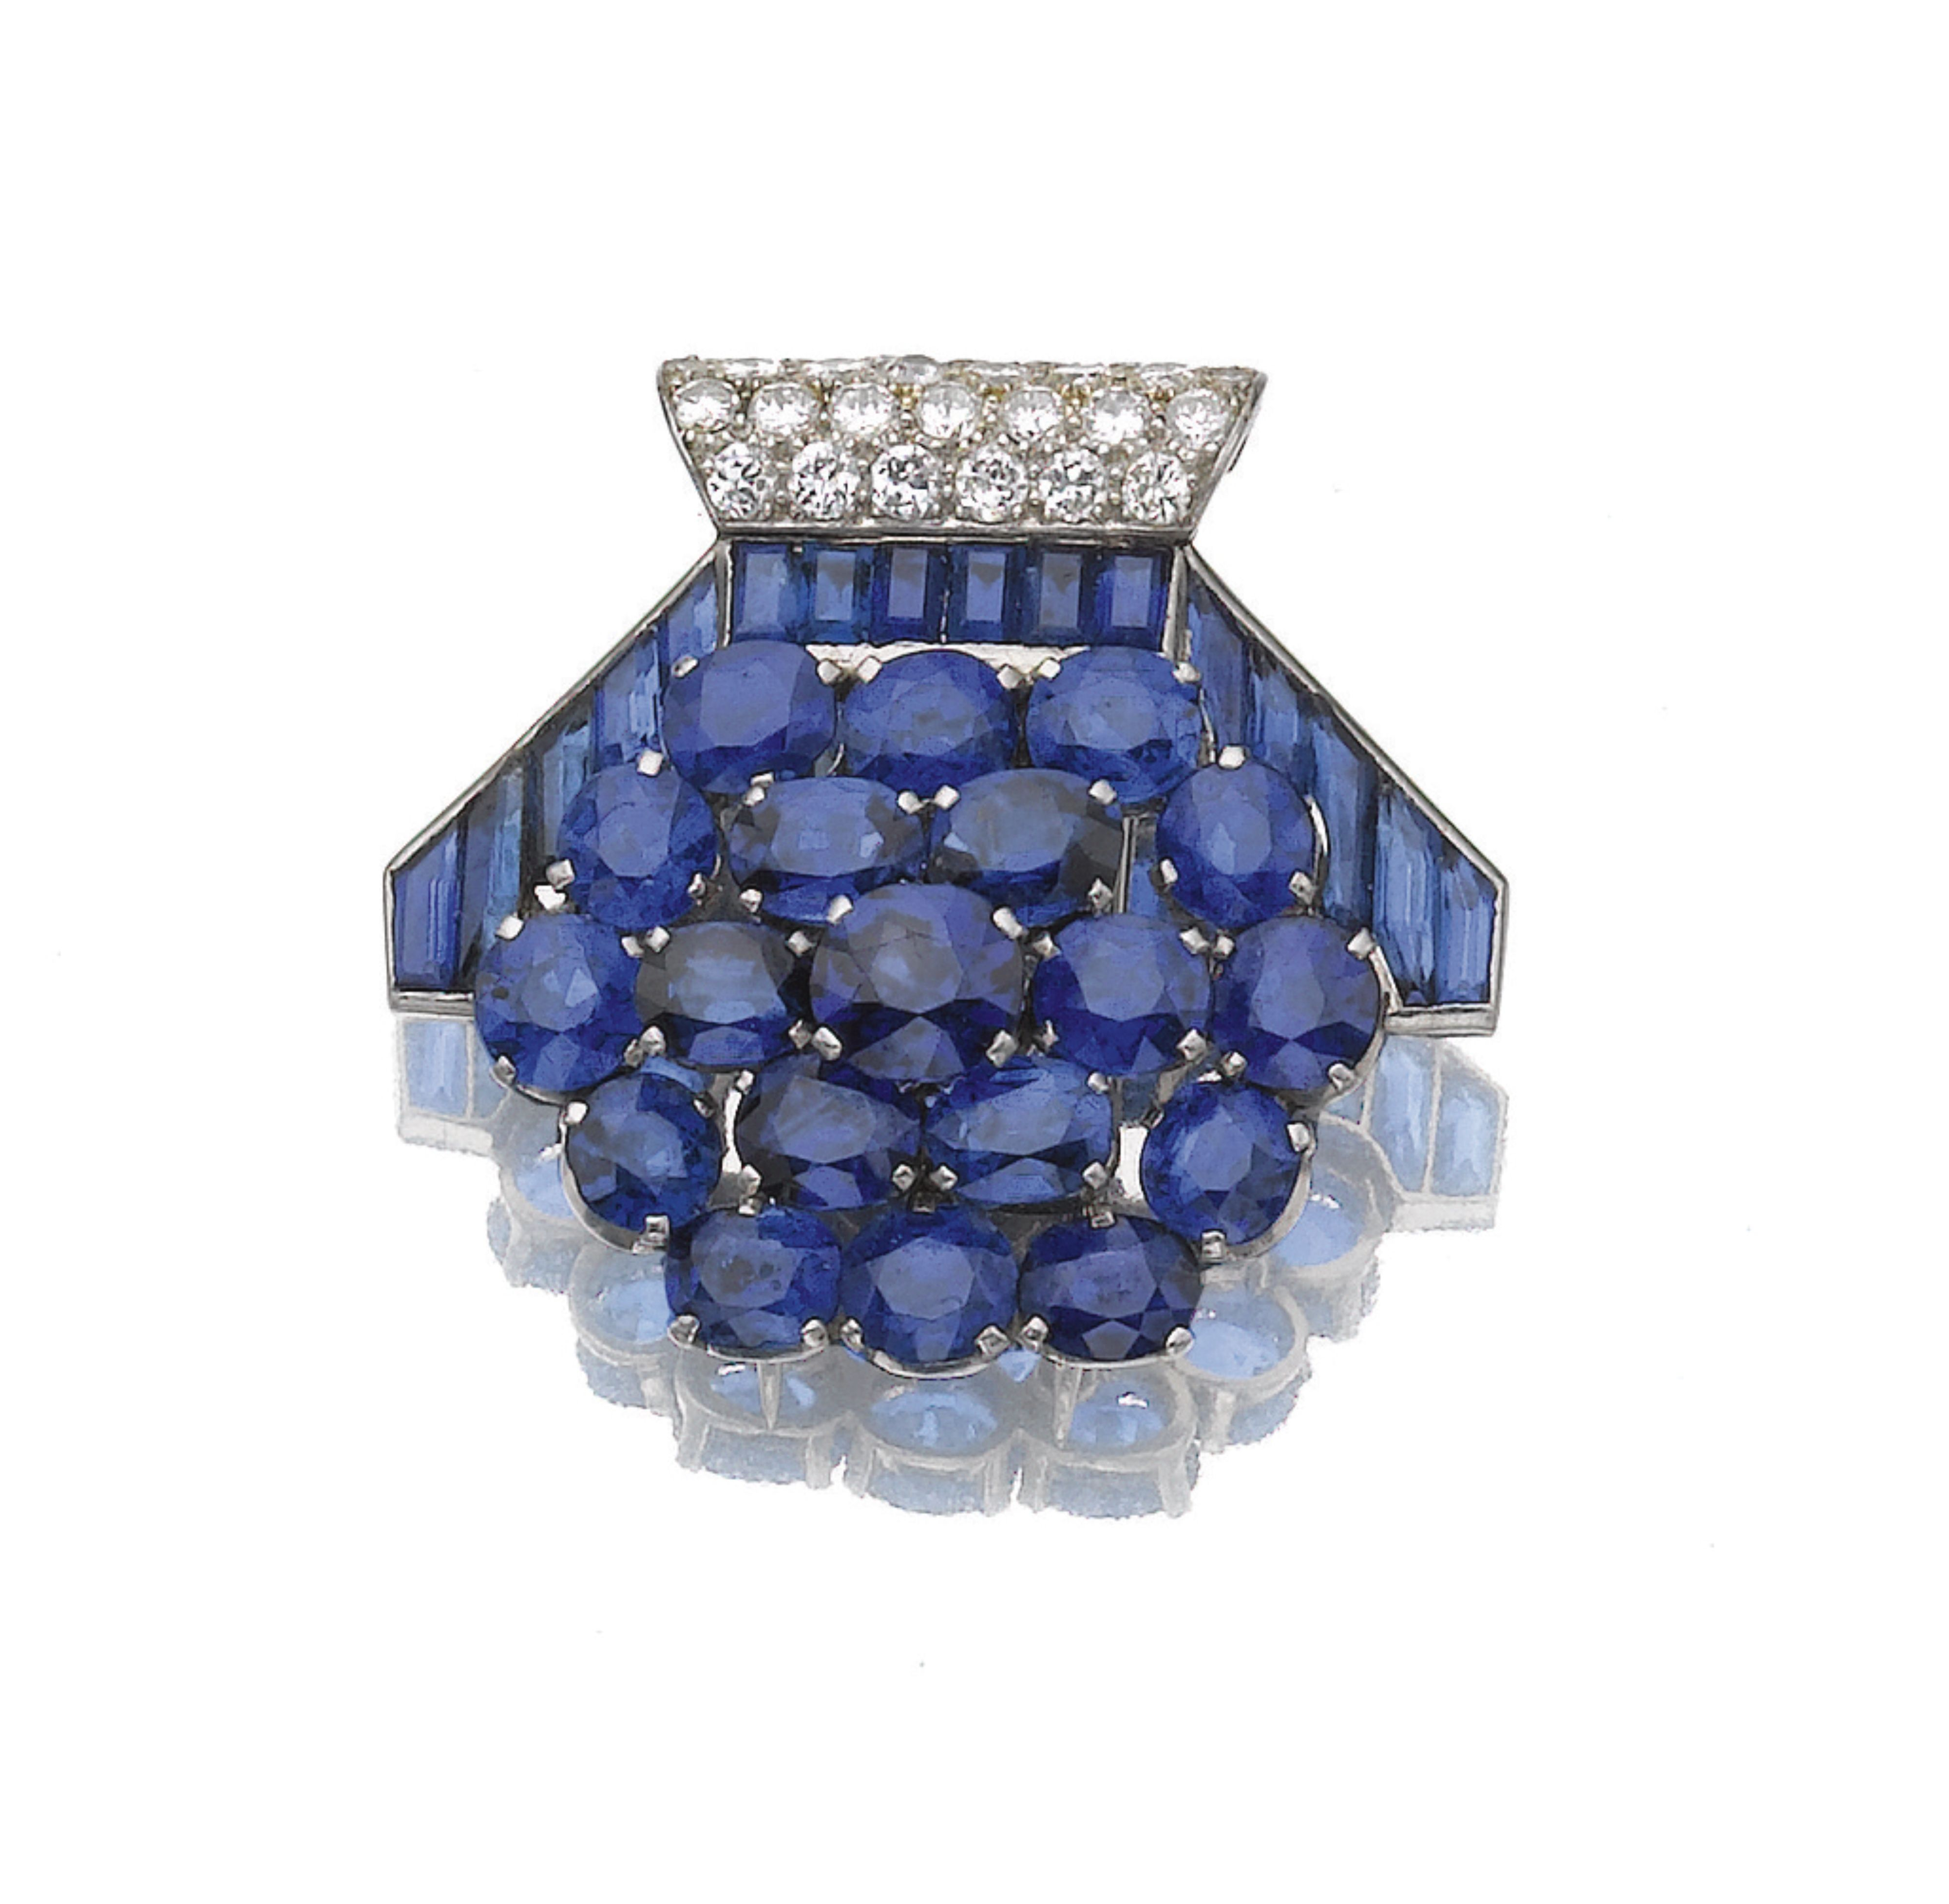 Sapphire and diamond clip, Cartier, circa 1930 Of stylised shield design, set with oval and calibré-cut sapphires, accented with a pavé-set brilliant and single-cut diamond motif, signed Cartier London, numbered.